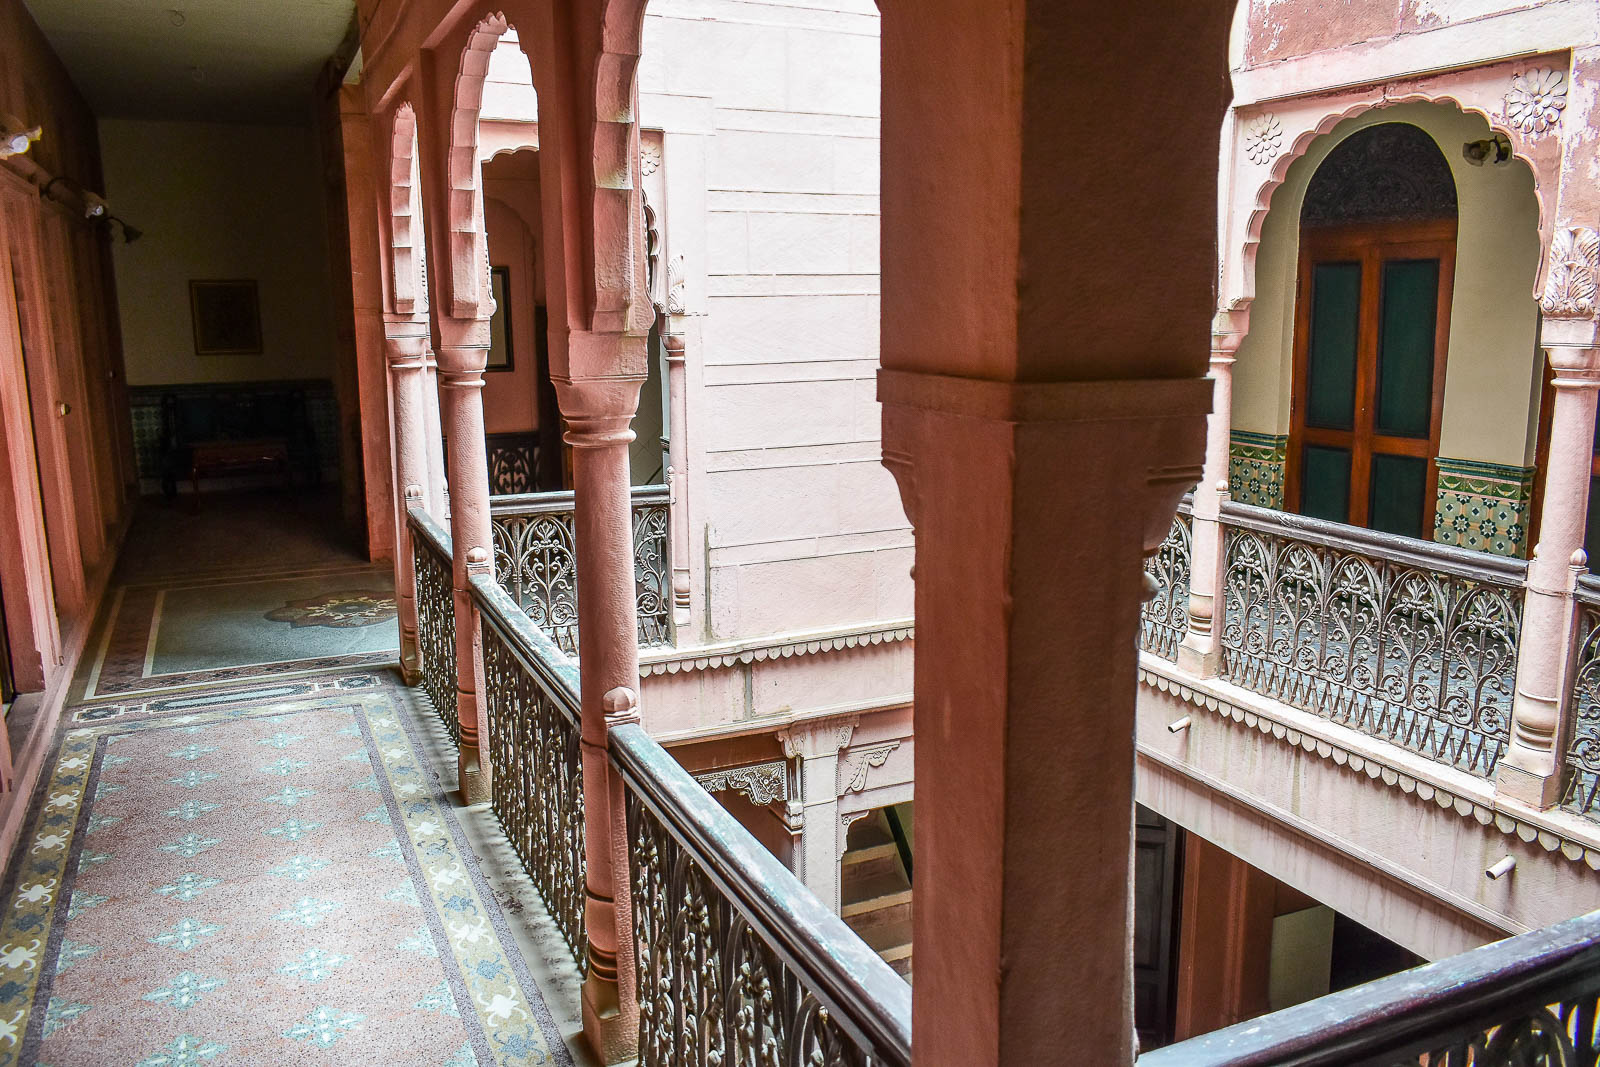 older-parts-of-bhanwar-niwas-haveli